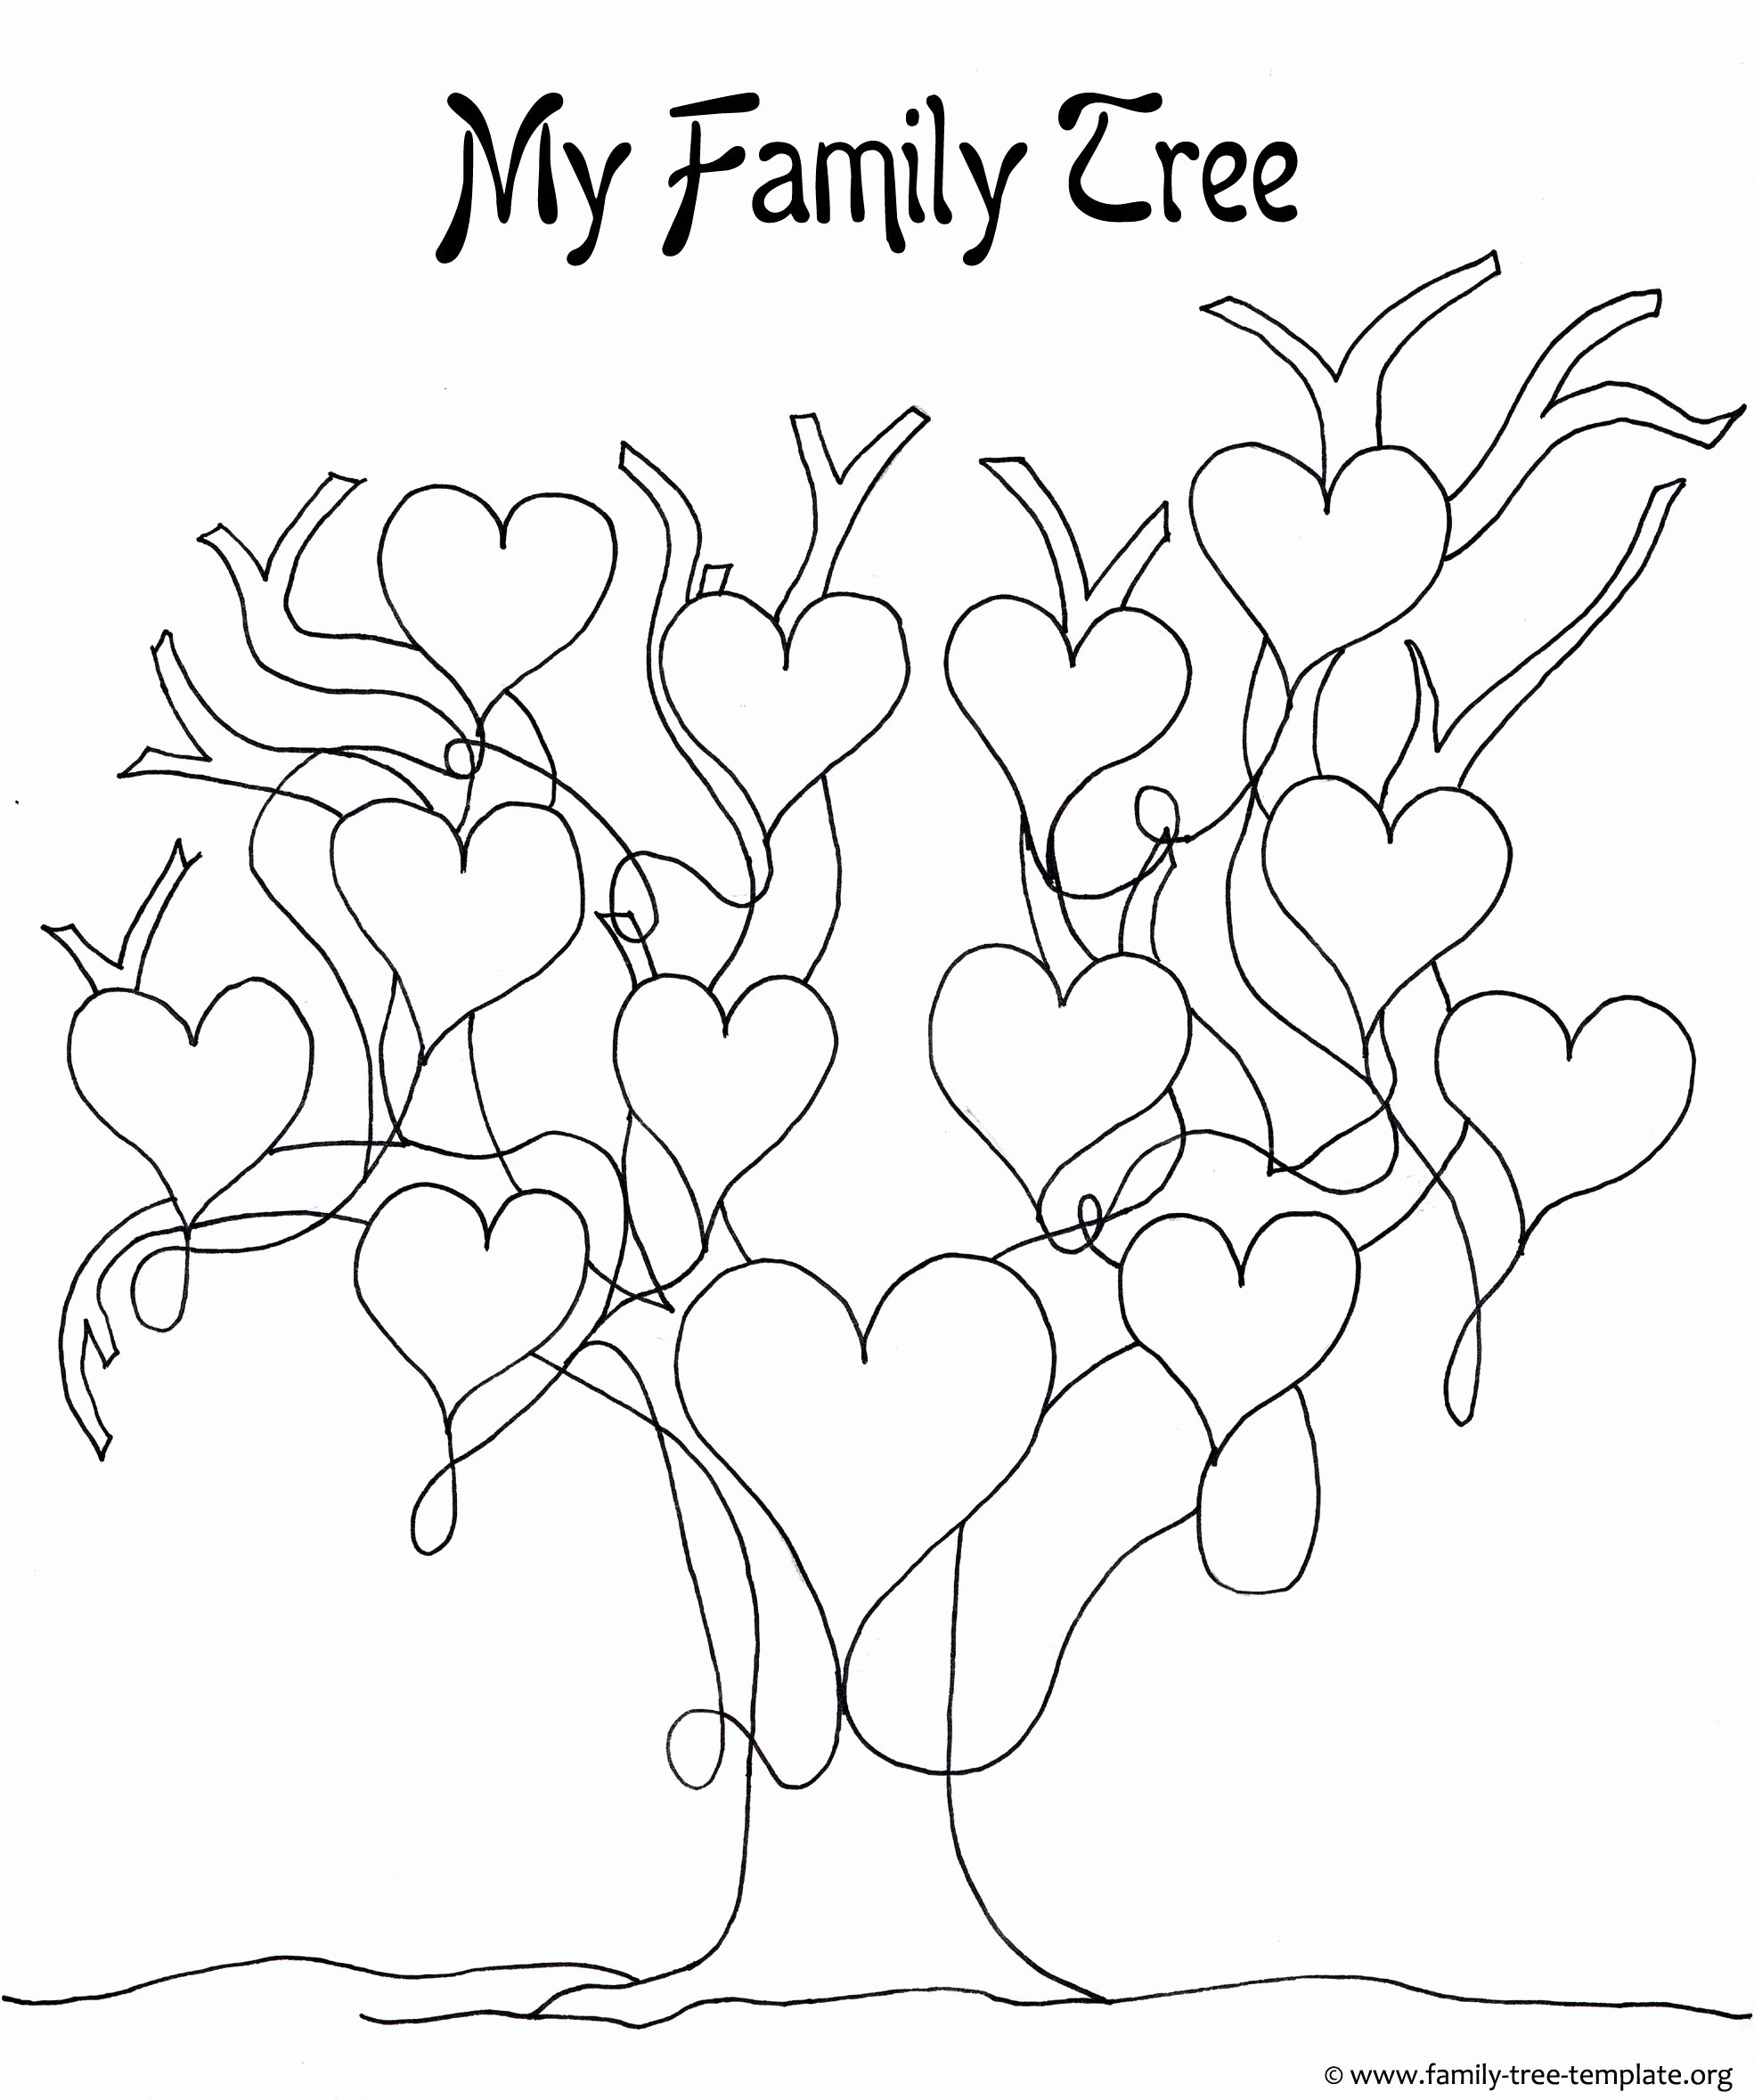 Family Tree Template Free Best Of A Printable Blank Family Tree to Make Your Kids Genealogy